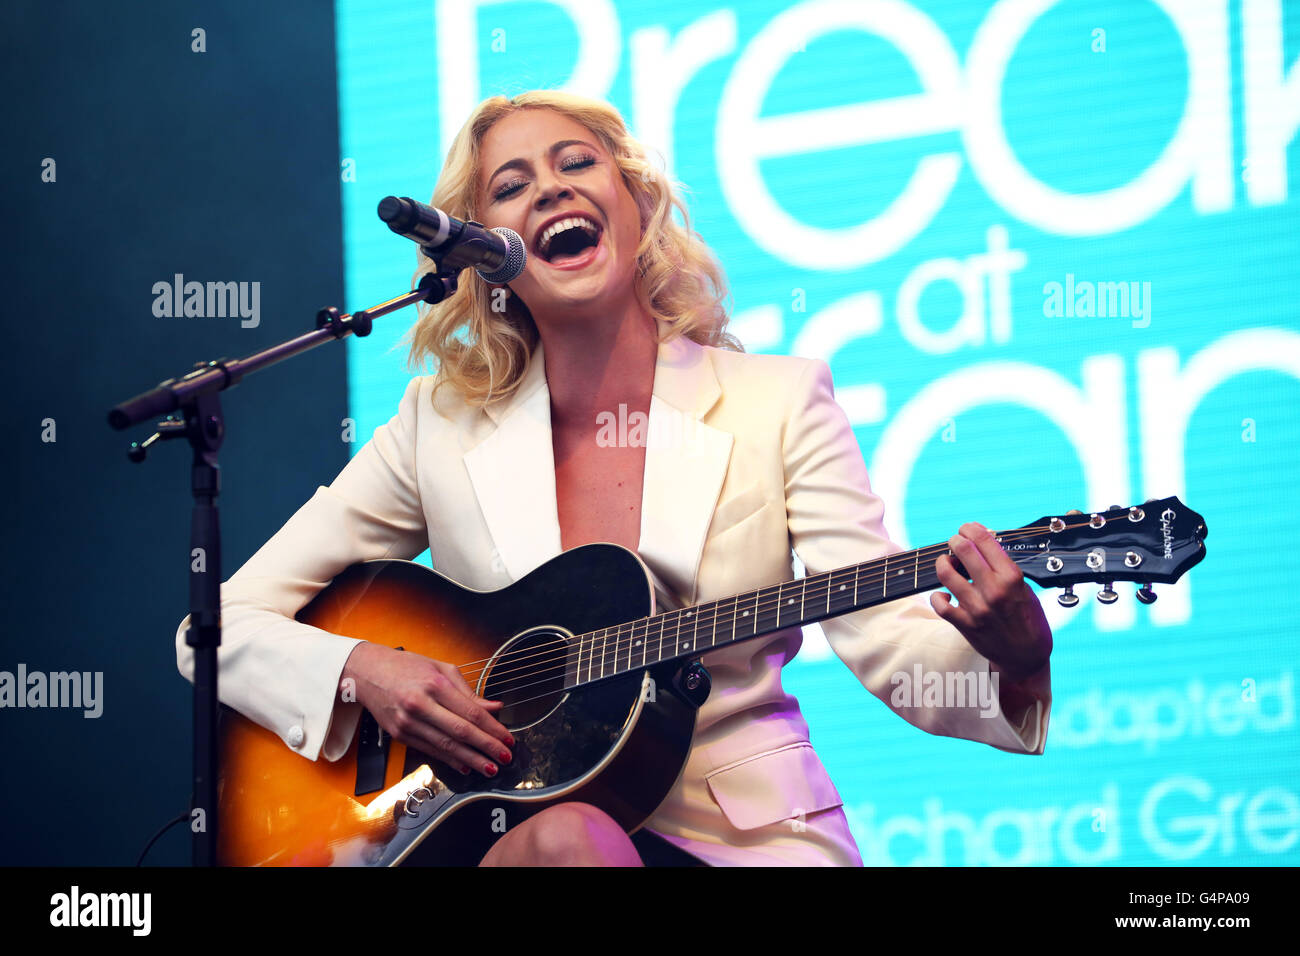 London, UK. 19th June 2016. Pixie Lott performing Moon River with her guitar in Breakfast at Tiffany's at West - Stock Image